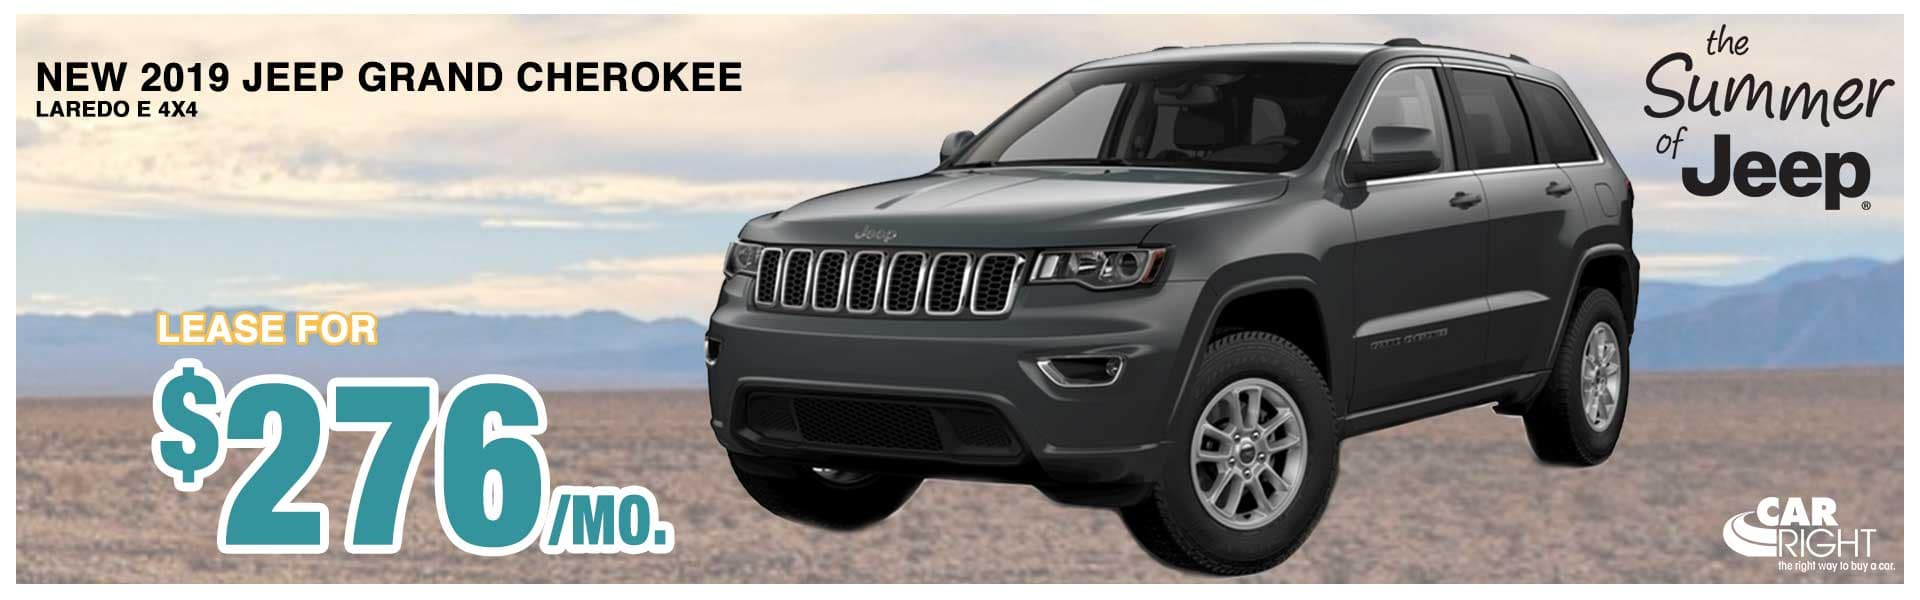 Carright Chrysler Dodge Jeep Ram New Used Cars Moon Twp